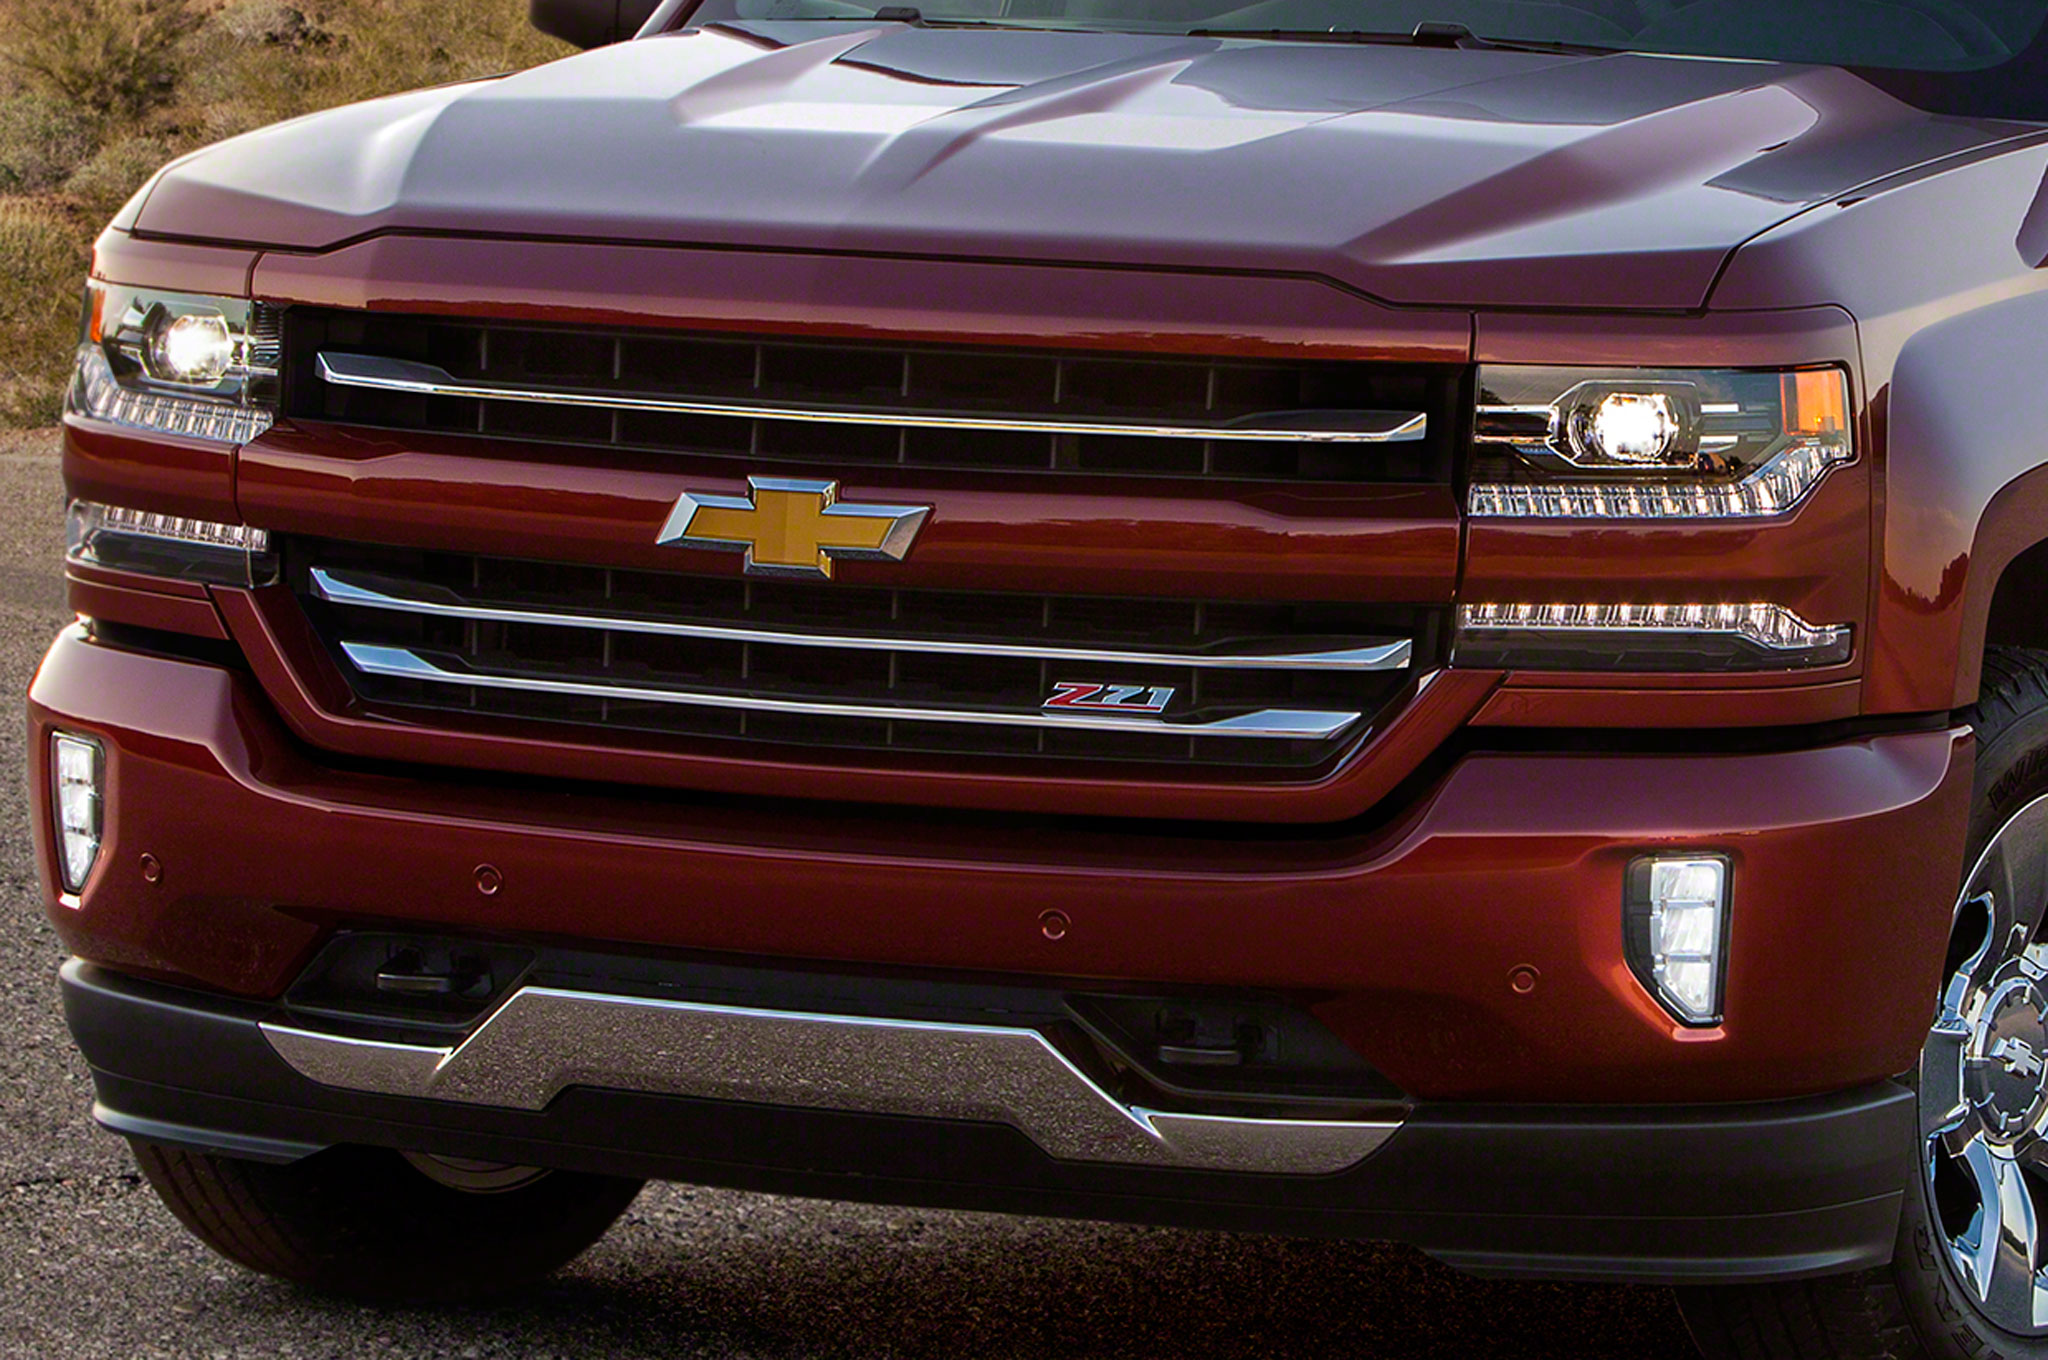 Top 5 Features Of The 2016 Chevrolet Silverado